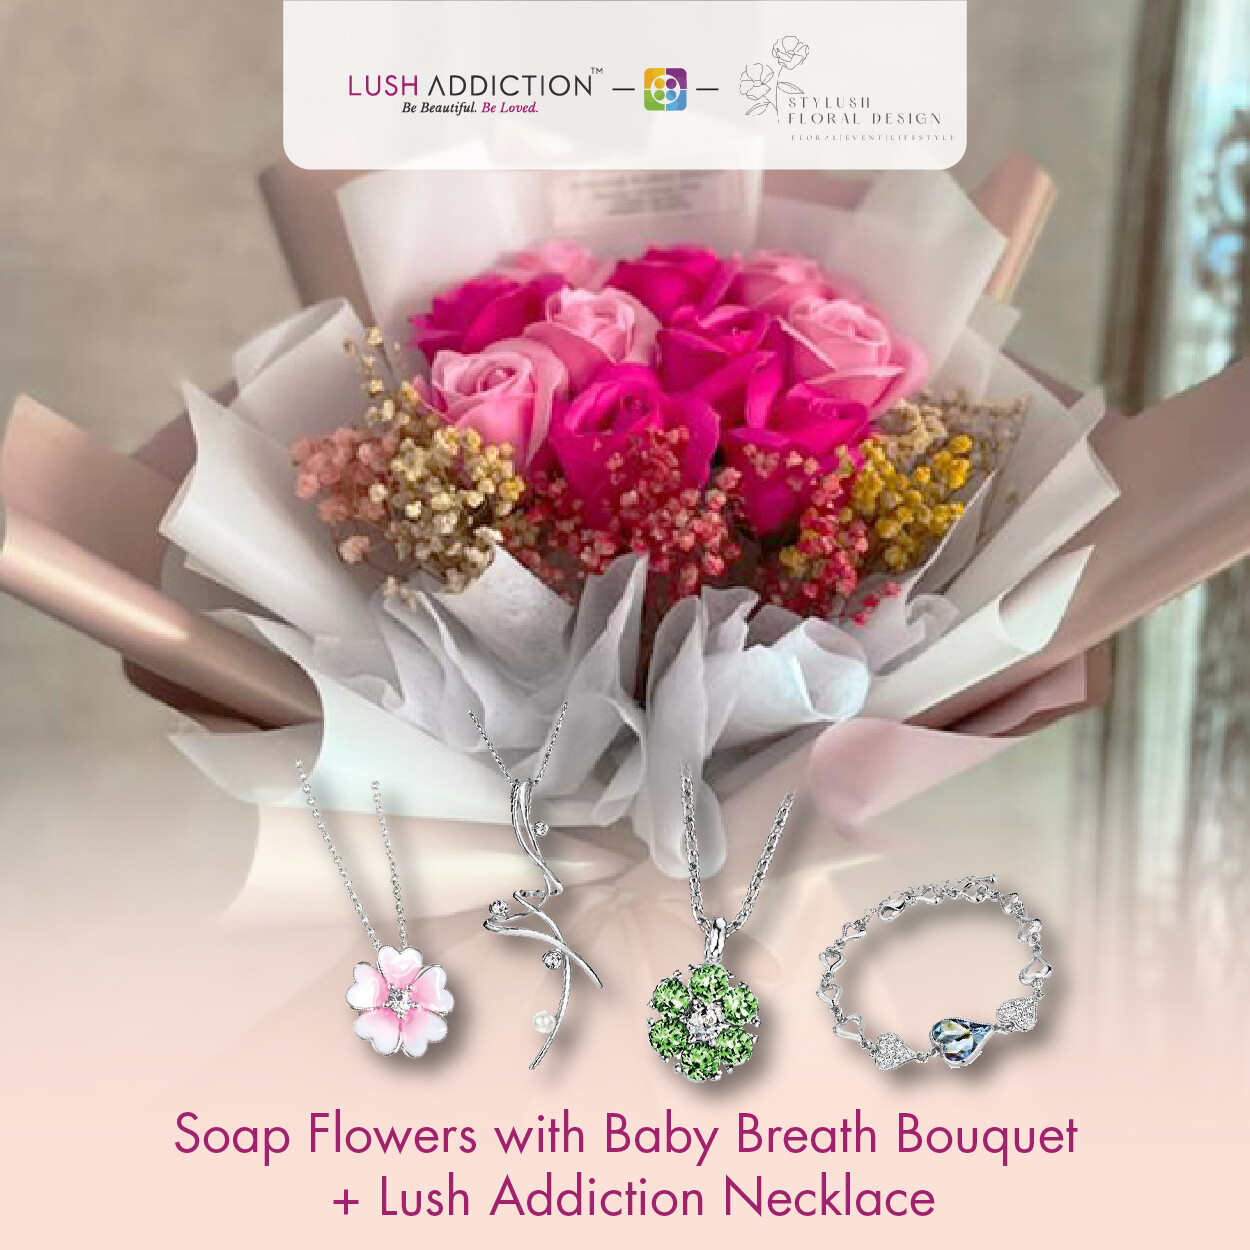 Soap Flowers with Baby Breath Bouquet + Lush Addiction Necklace (By: Stylush Studio Floral Design from Kota Kinabalu)